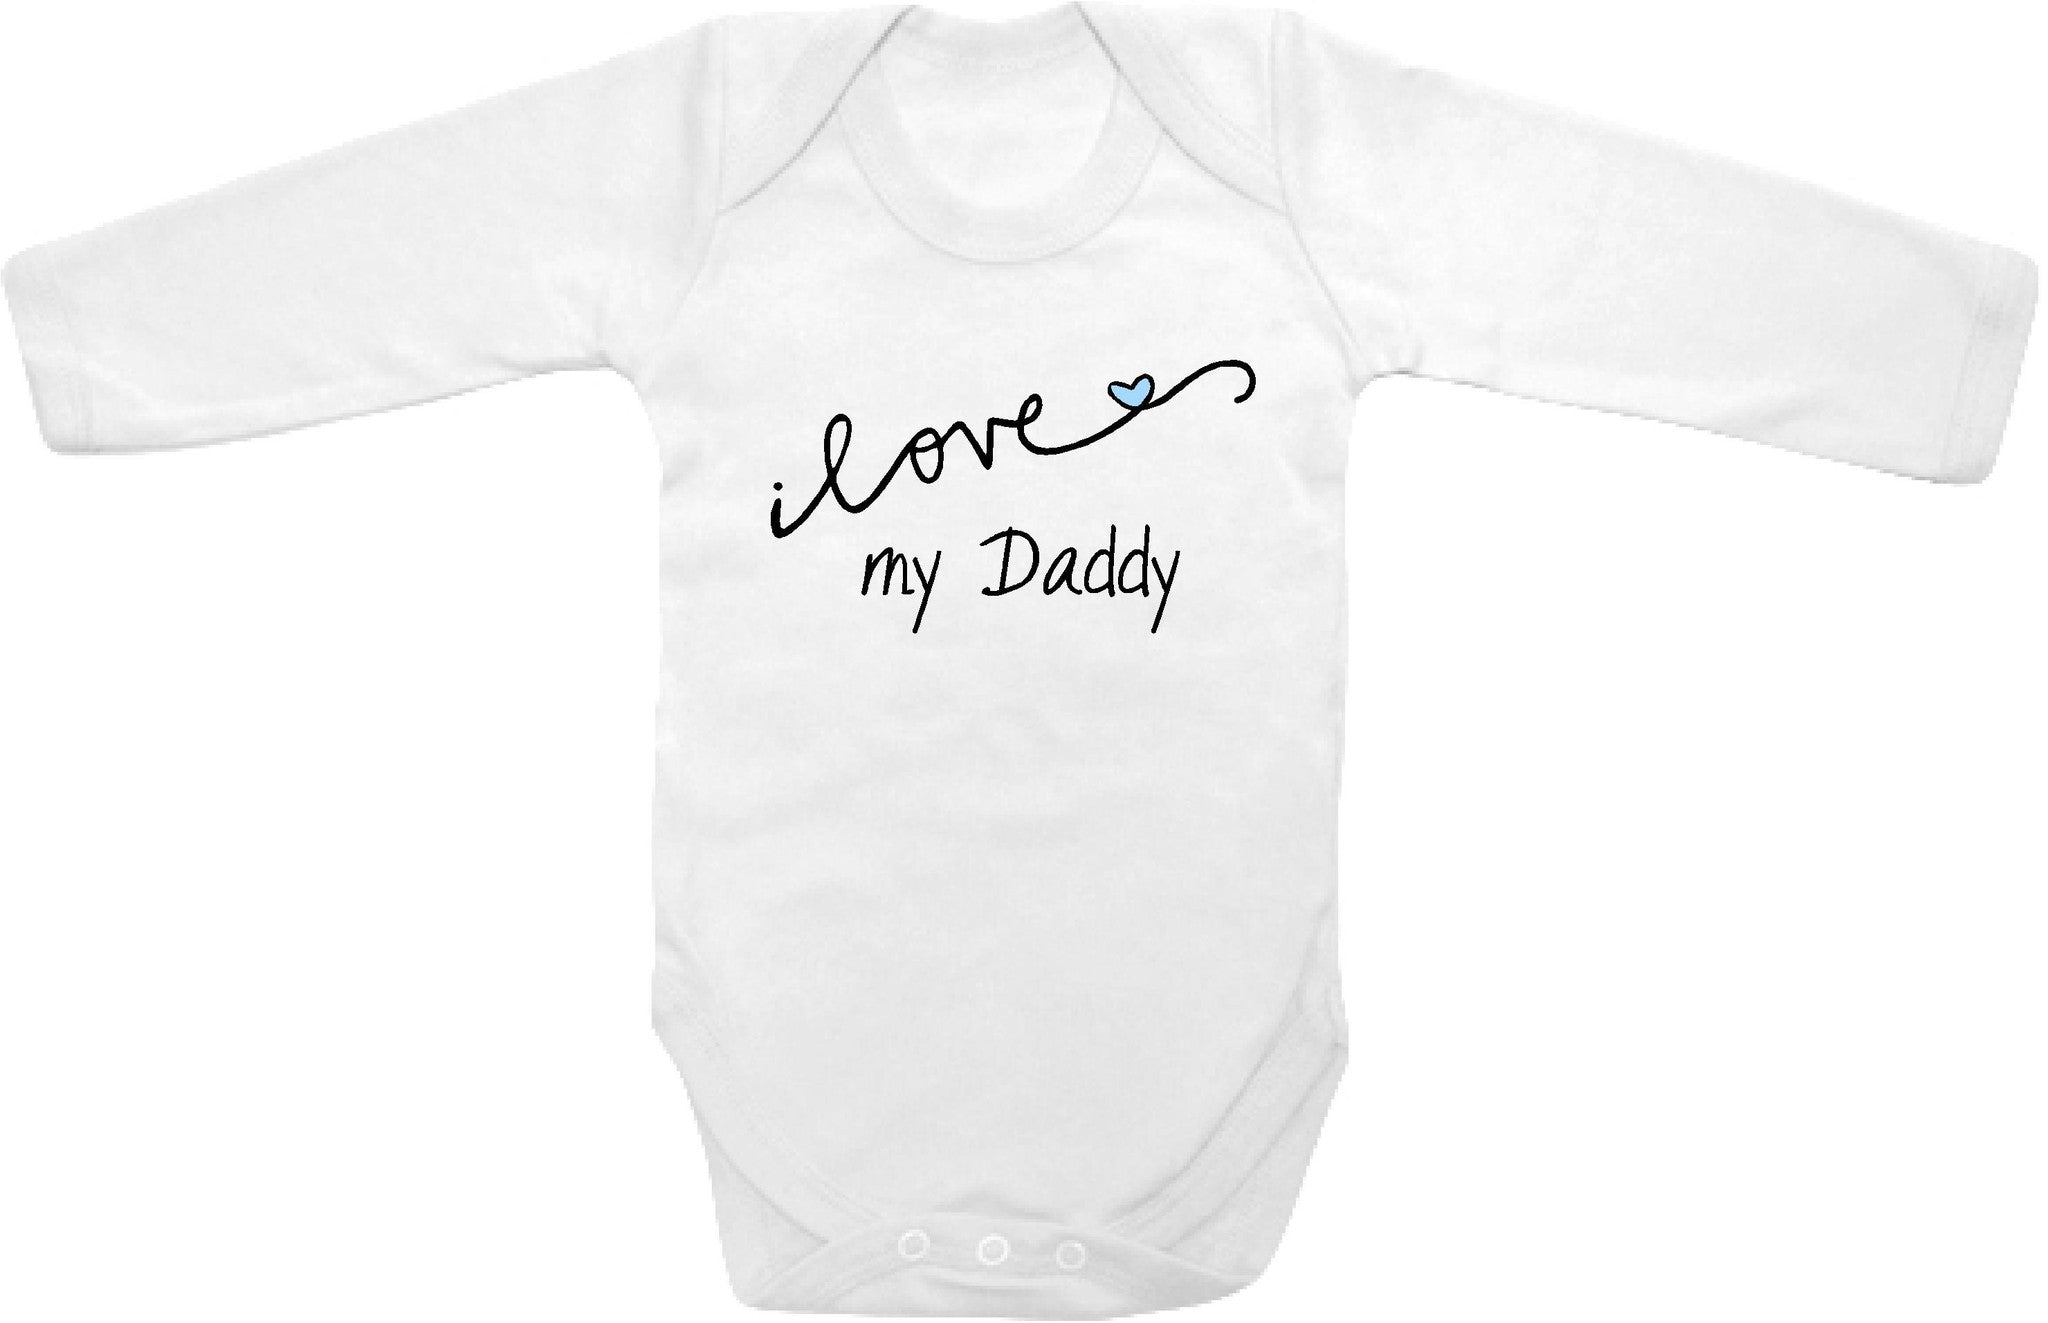 Cursive I love my Daddy cute infant clothing funny baby clothes one